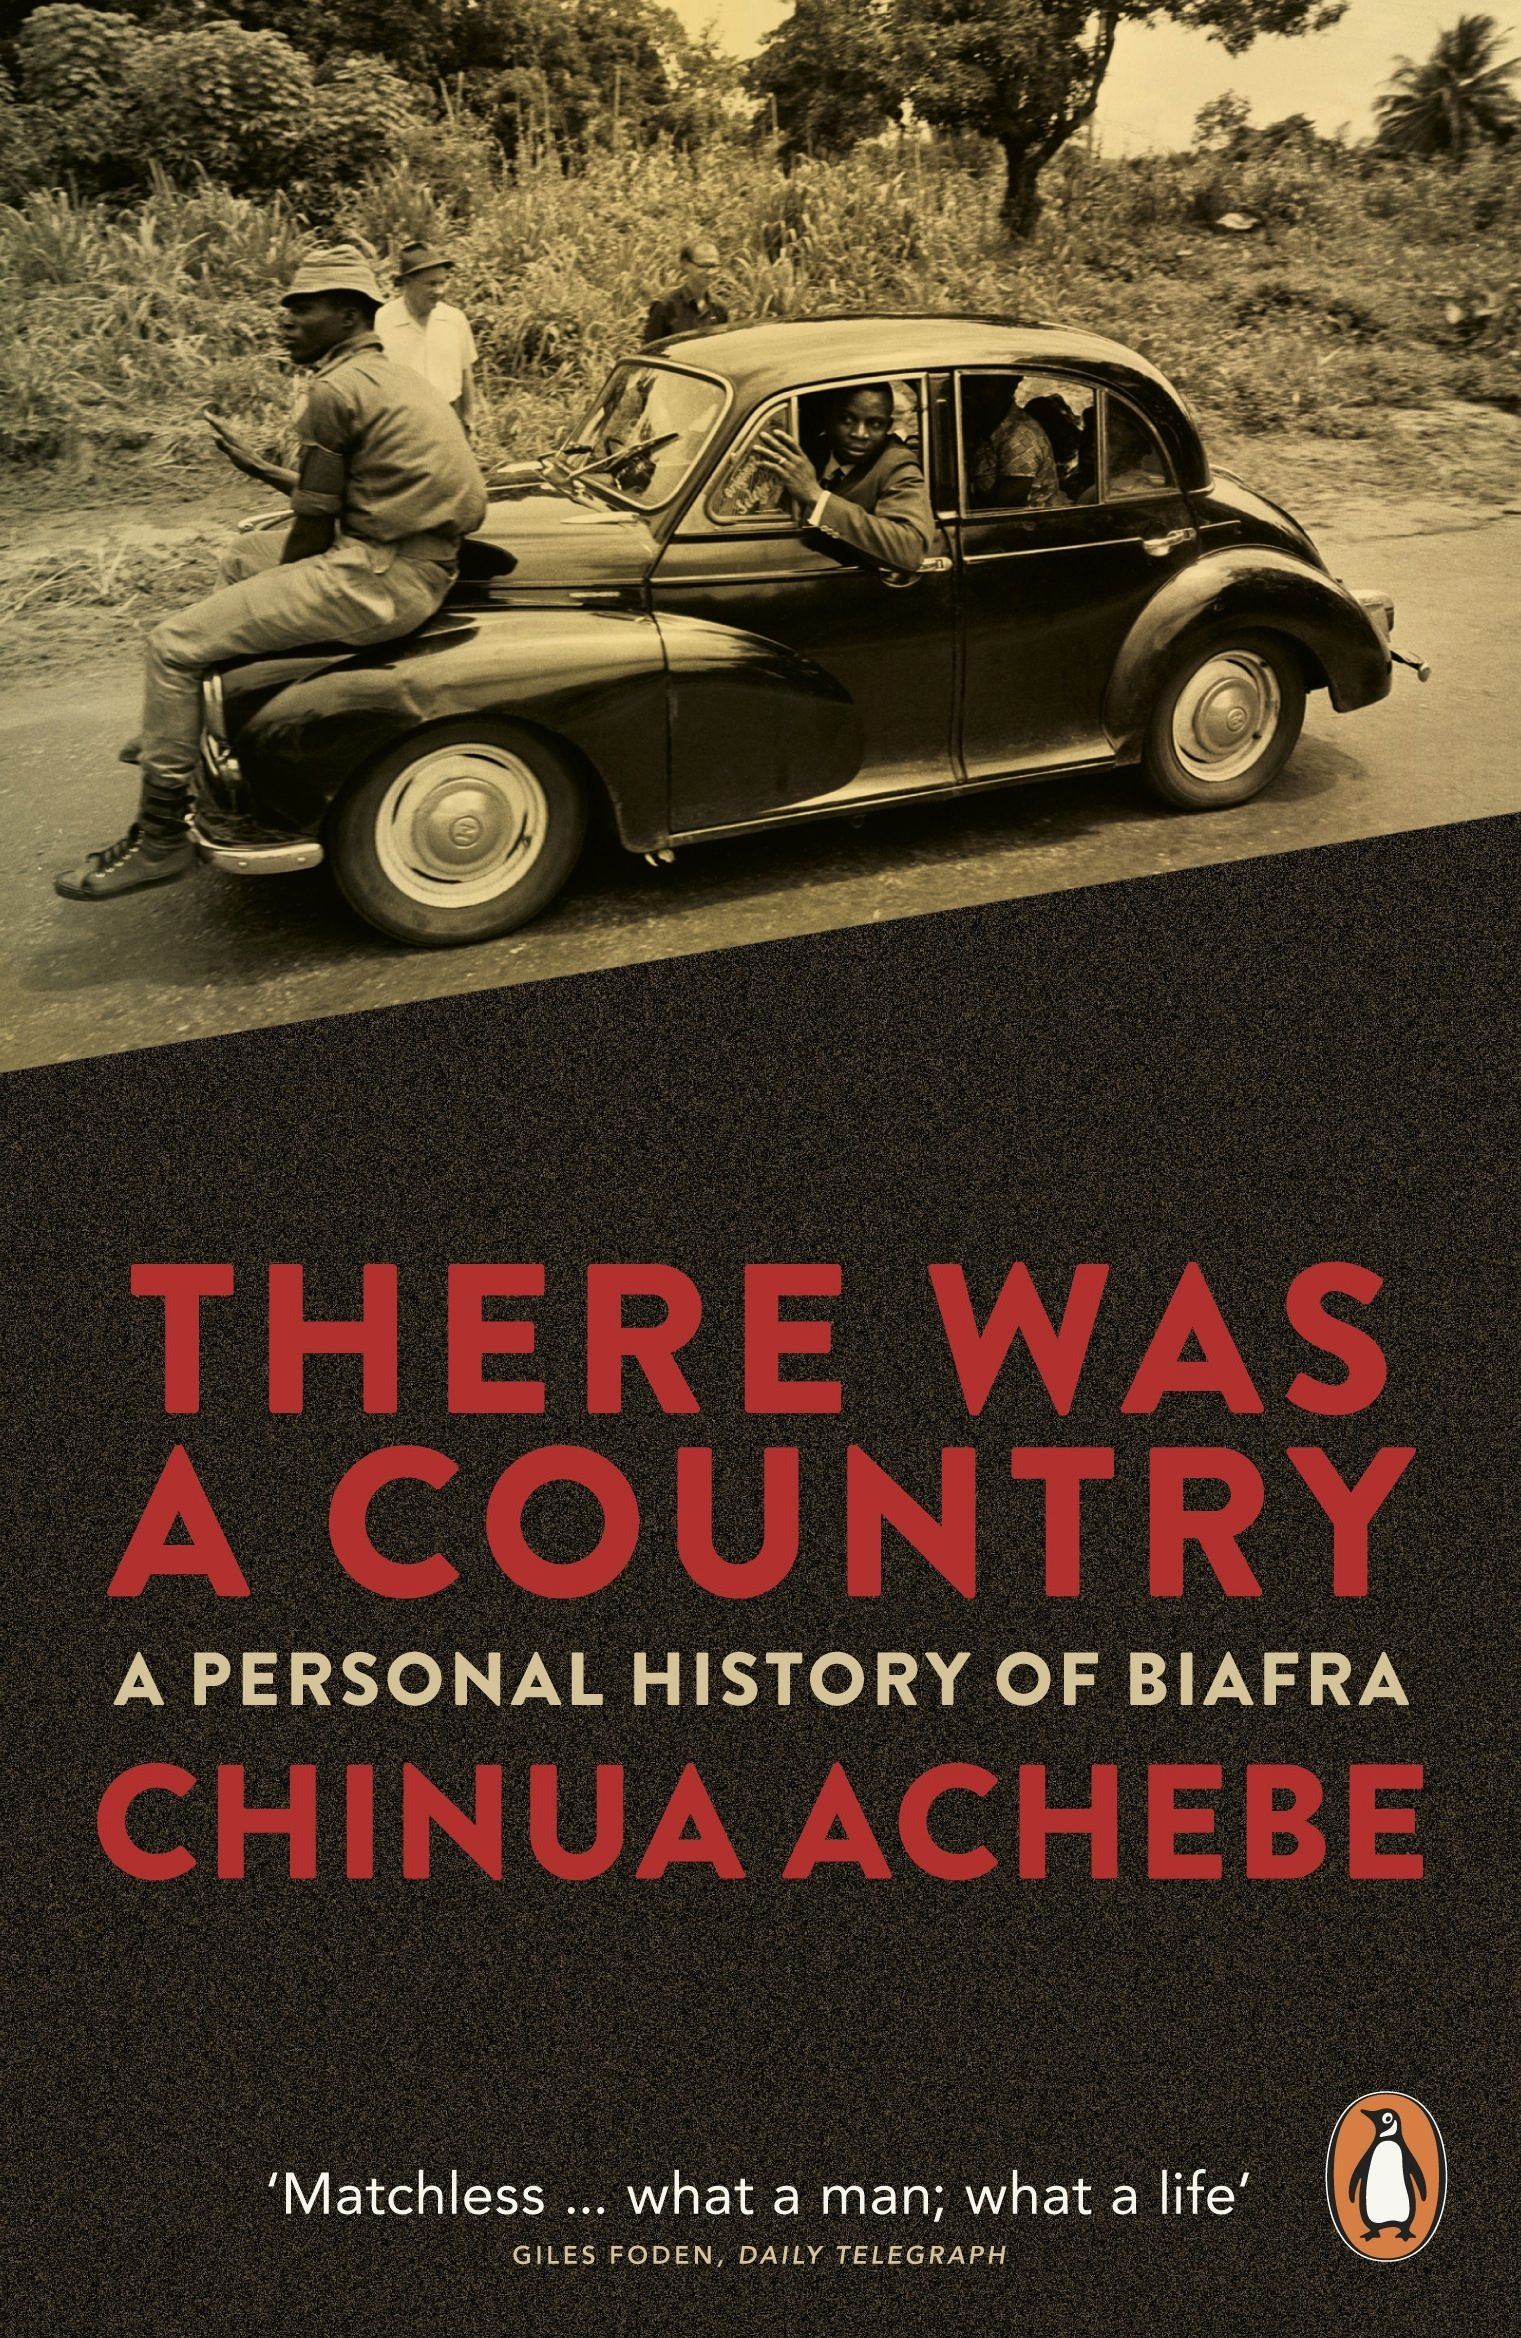 there was a country by chinua achebe free download